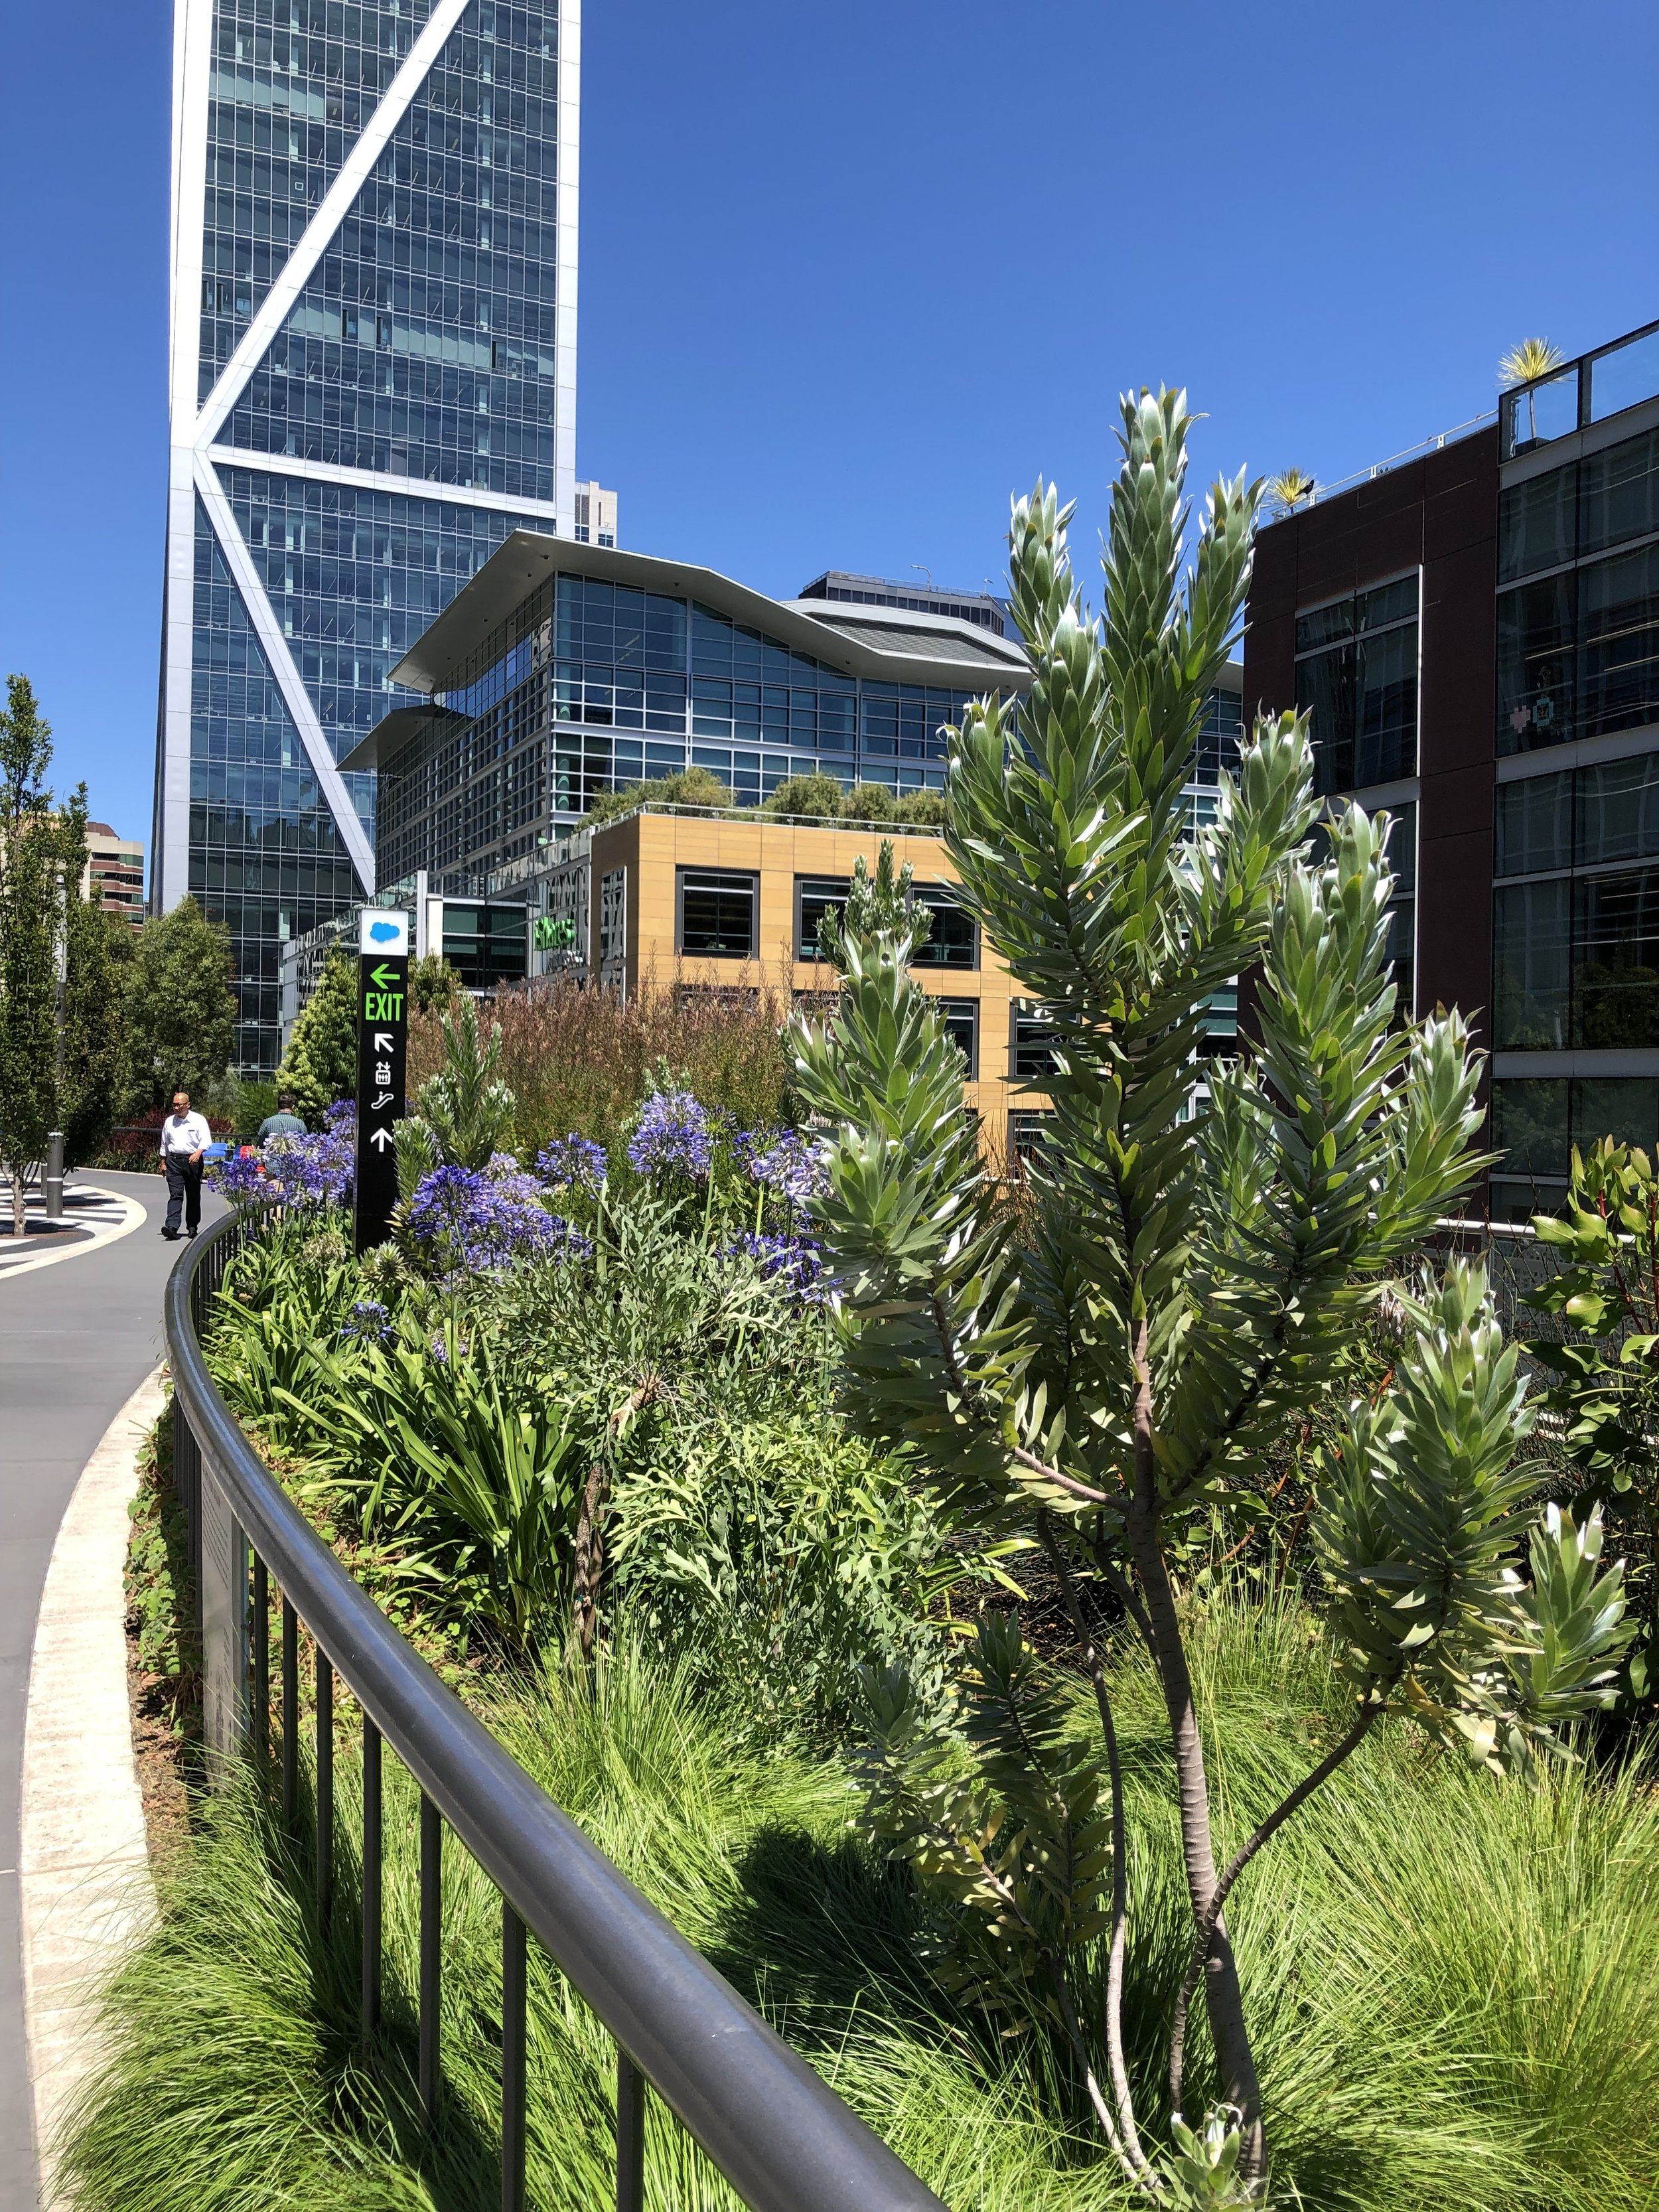 Silver tree on right, agapanthus flowers in background on left - both from South Africa